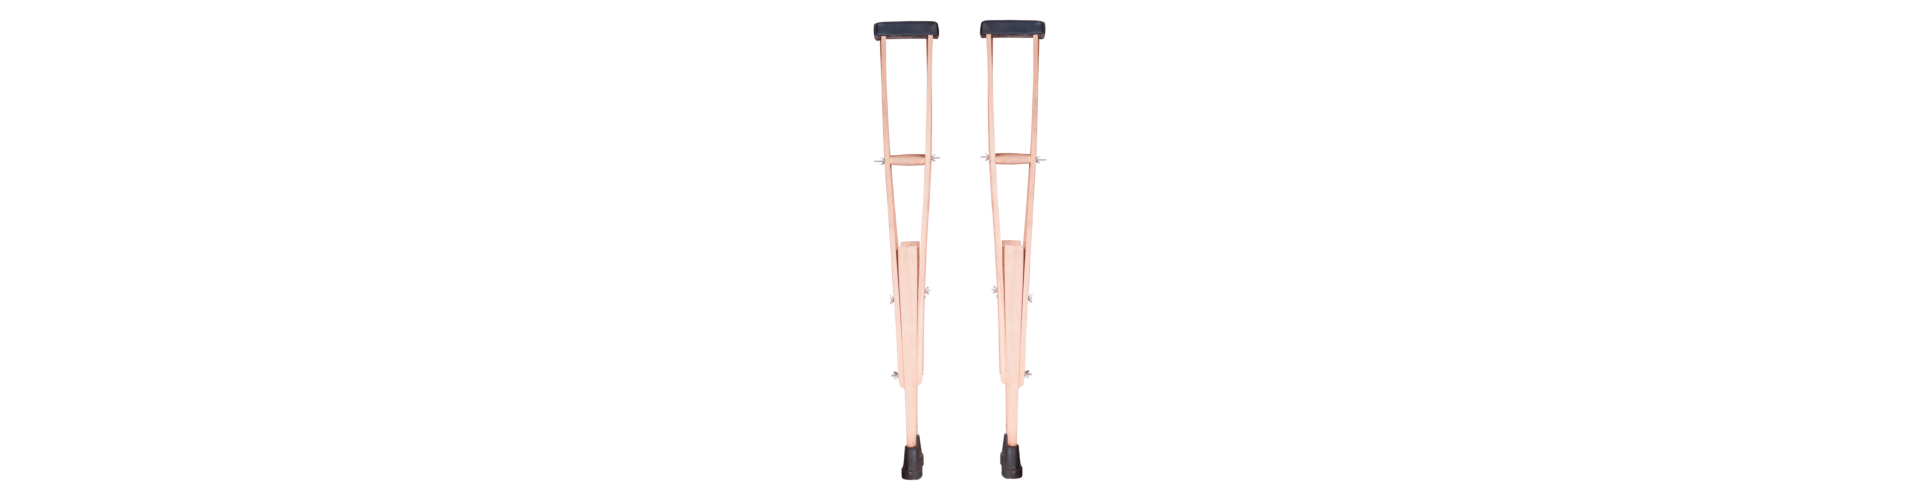 Knee-high medical compression stockings